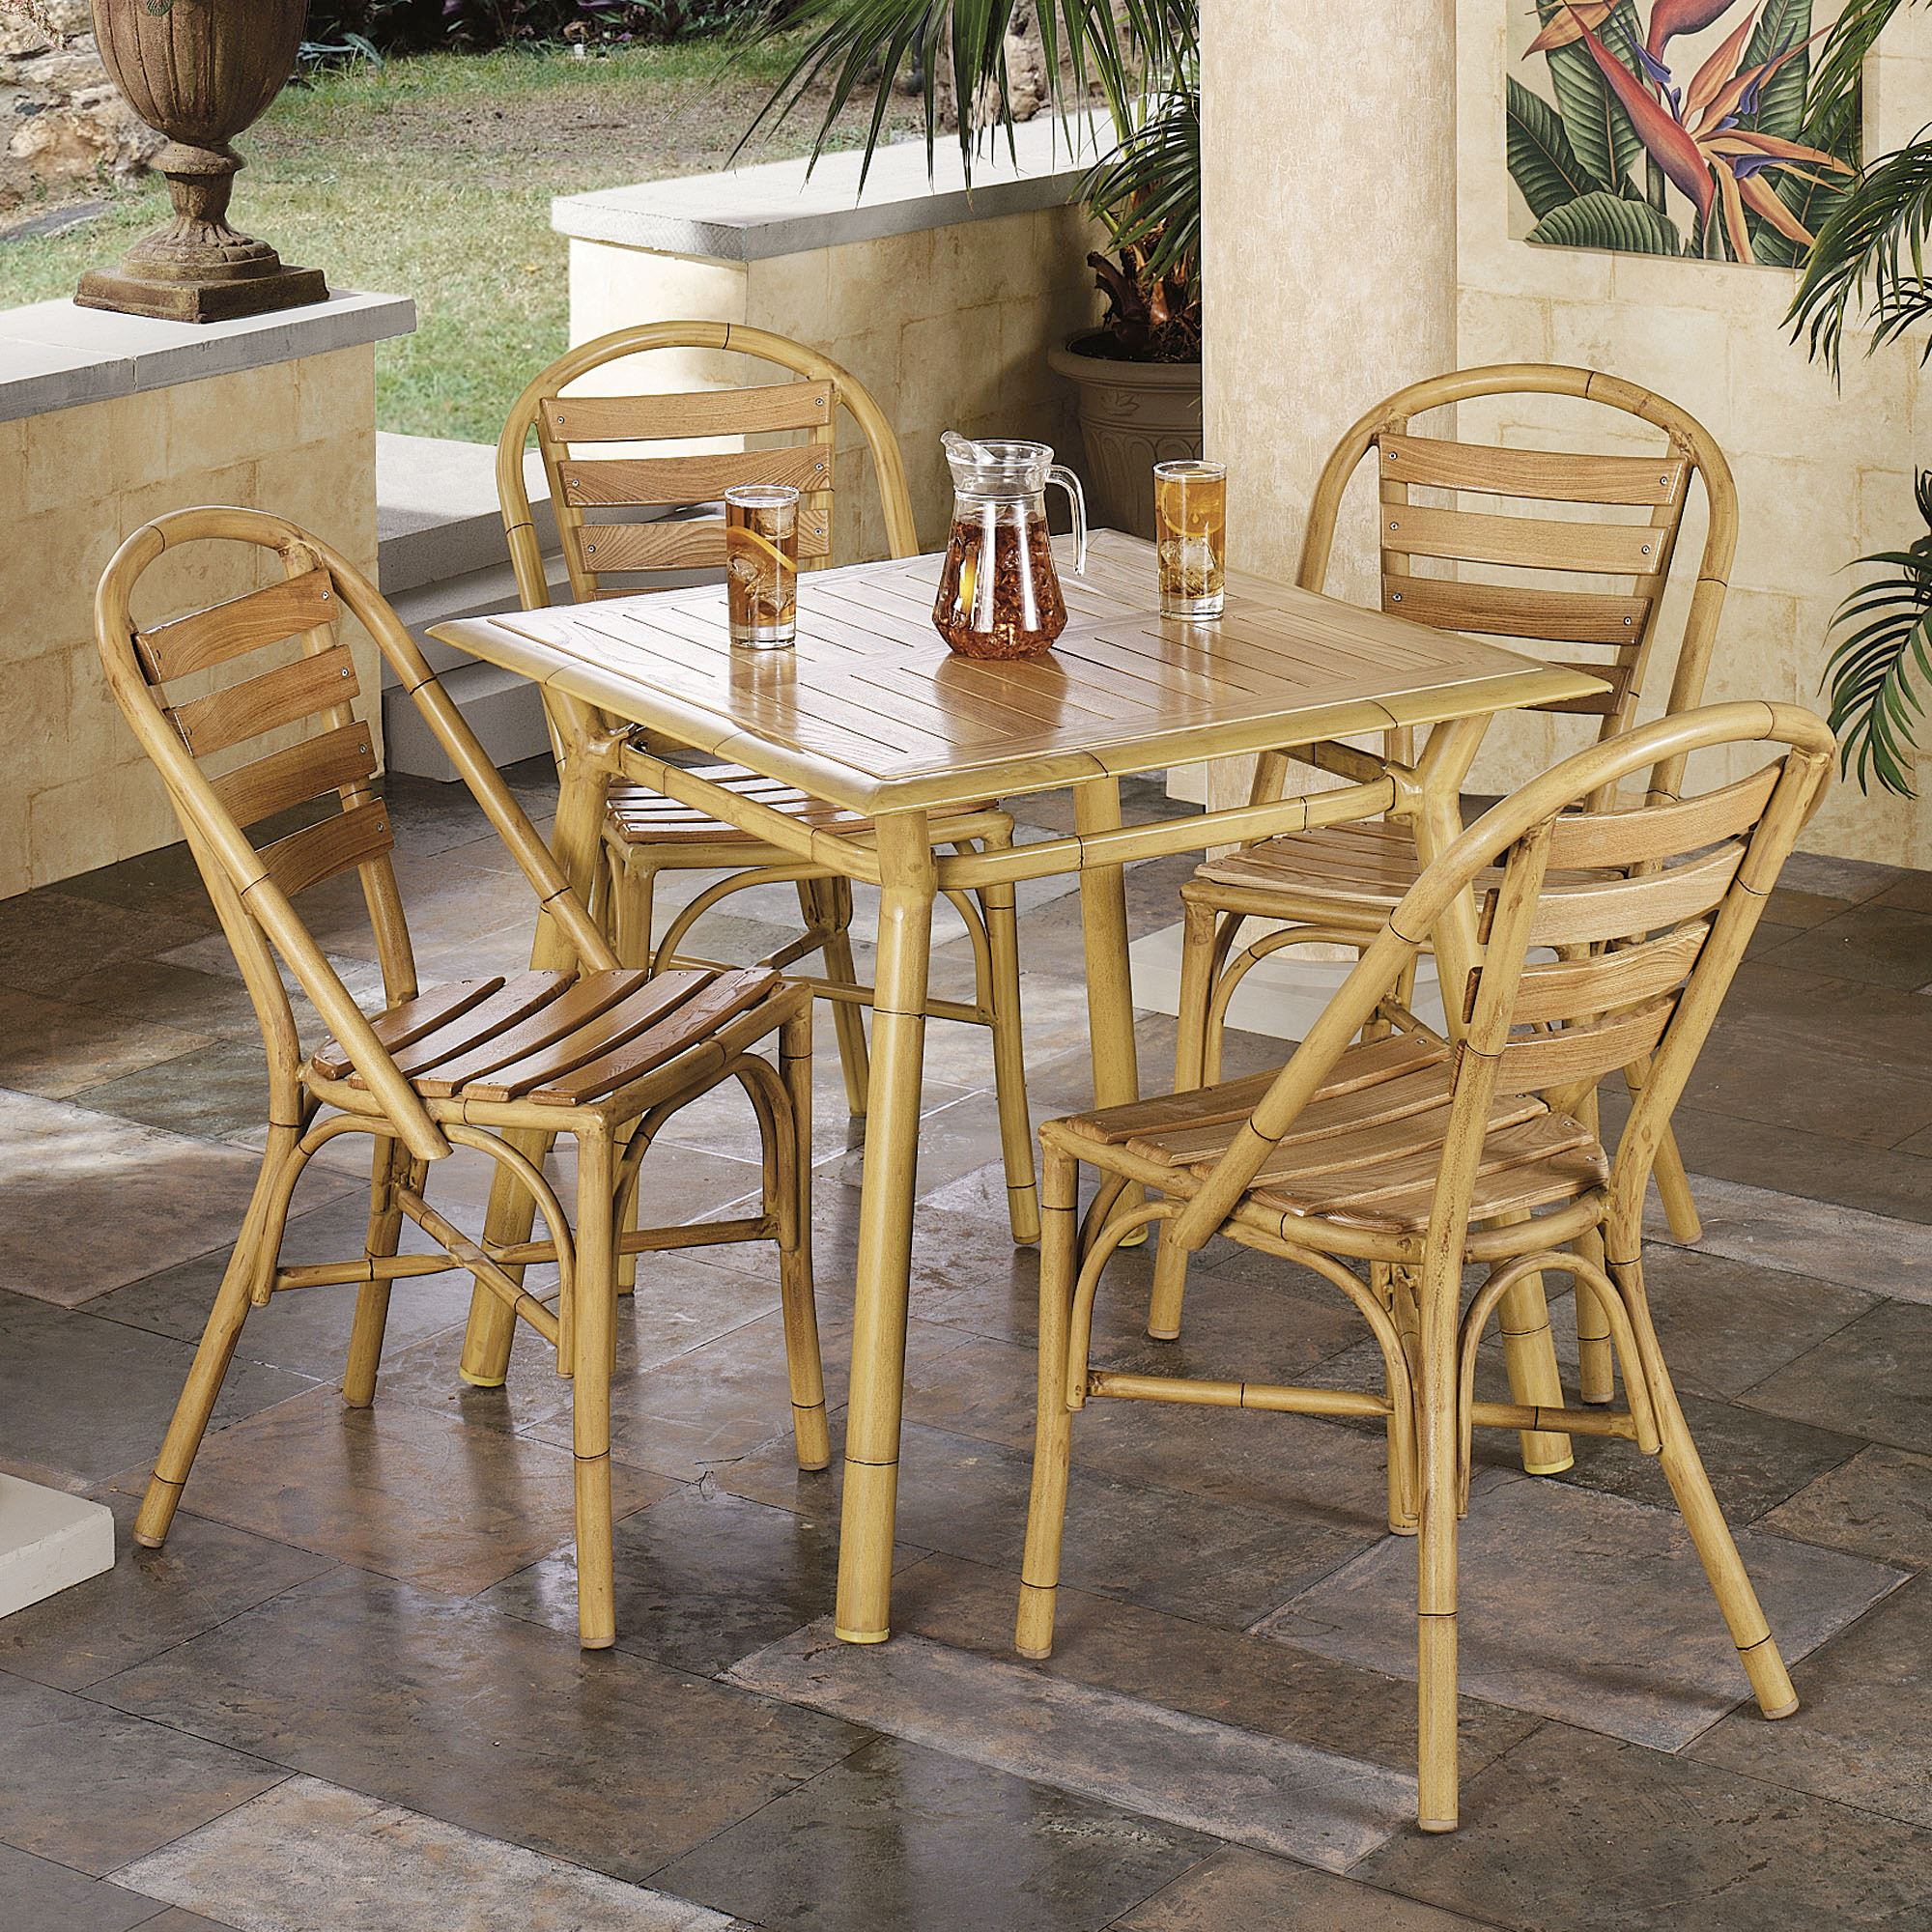 outdoor sets luxury patio covers dining furniture costco of elegant tiles